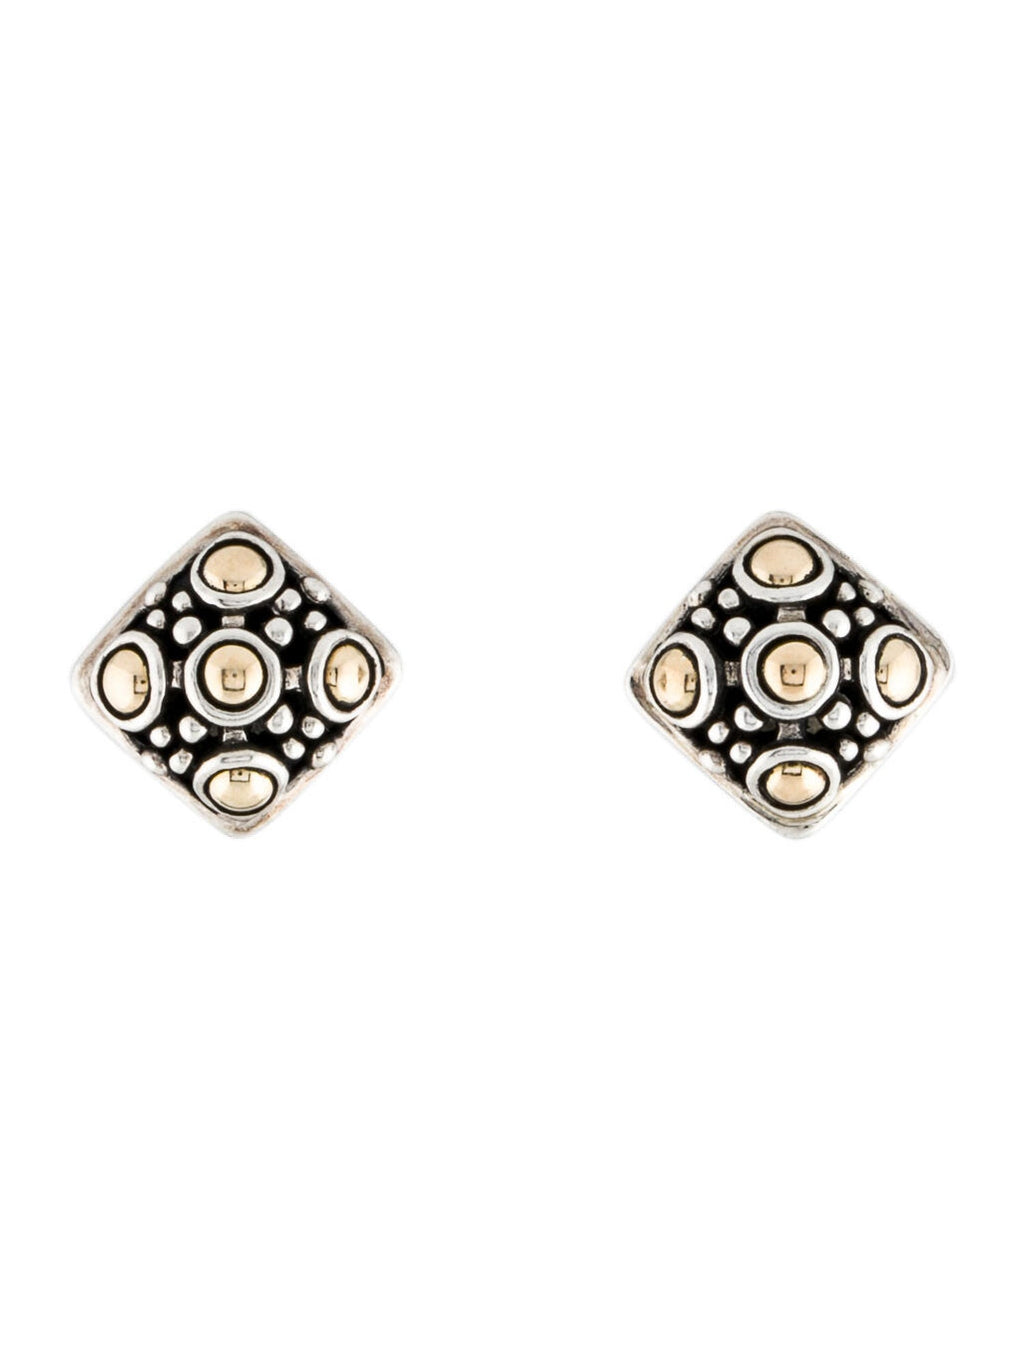 John Hardy Jaisalmer Dot Stud Earrings